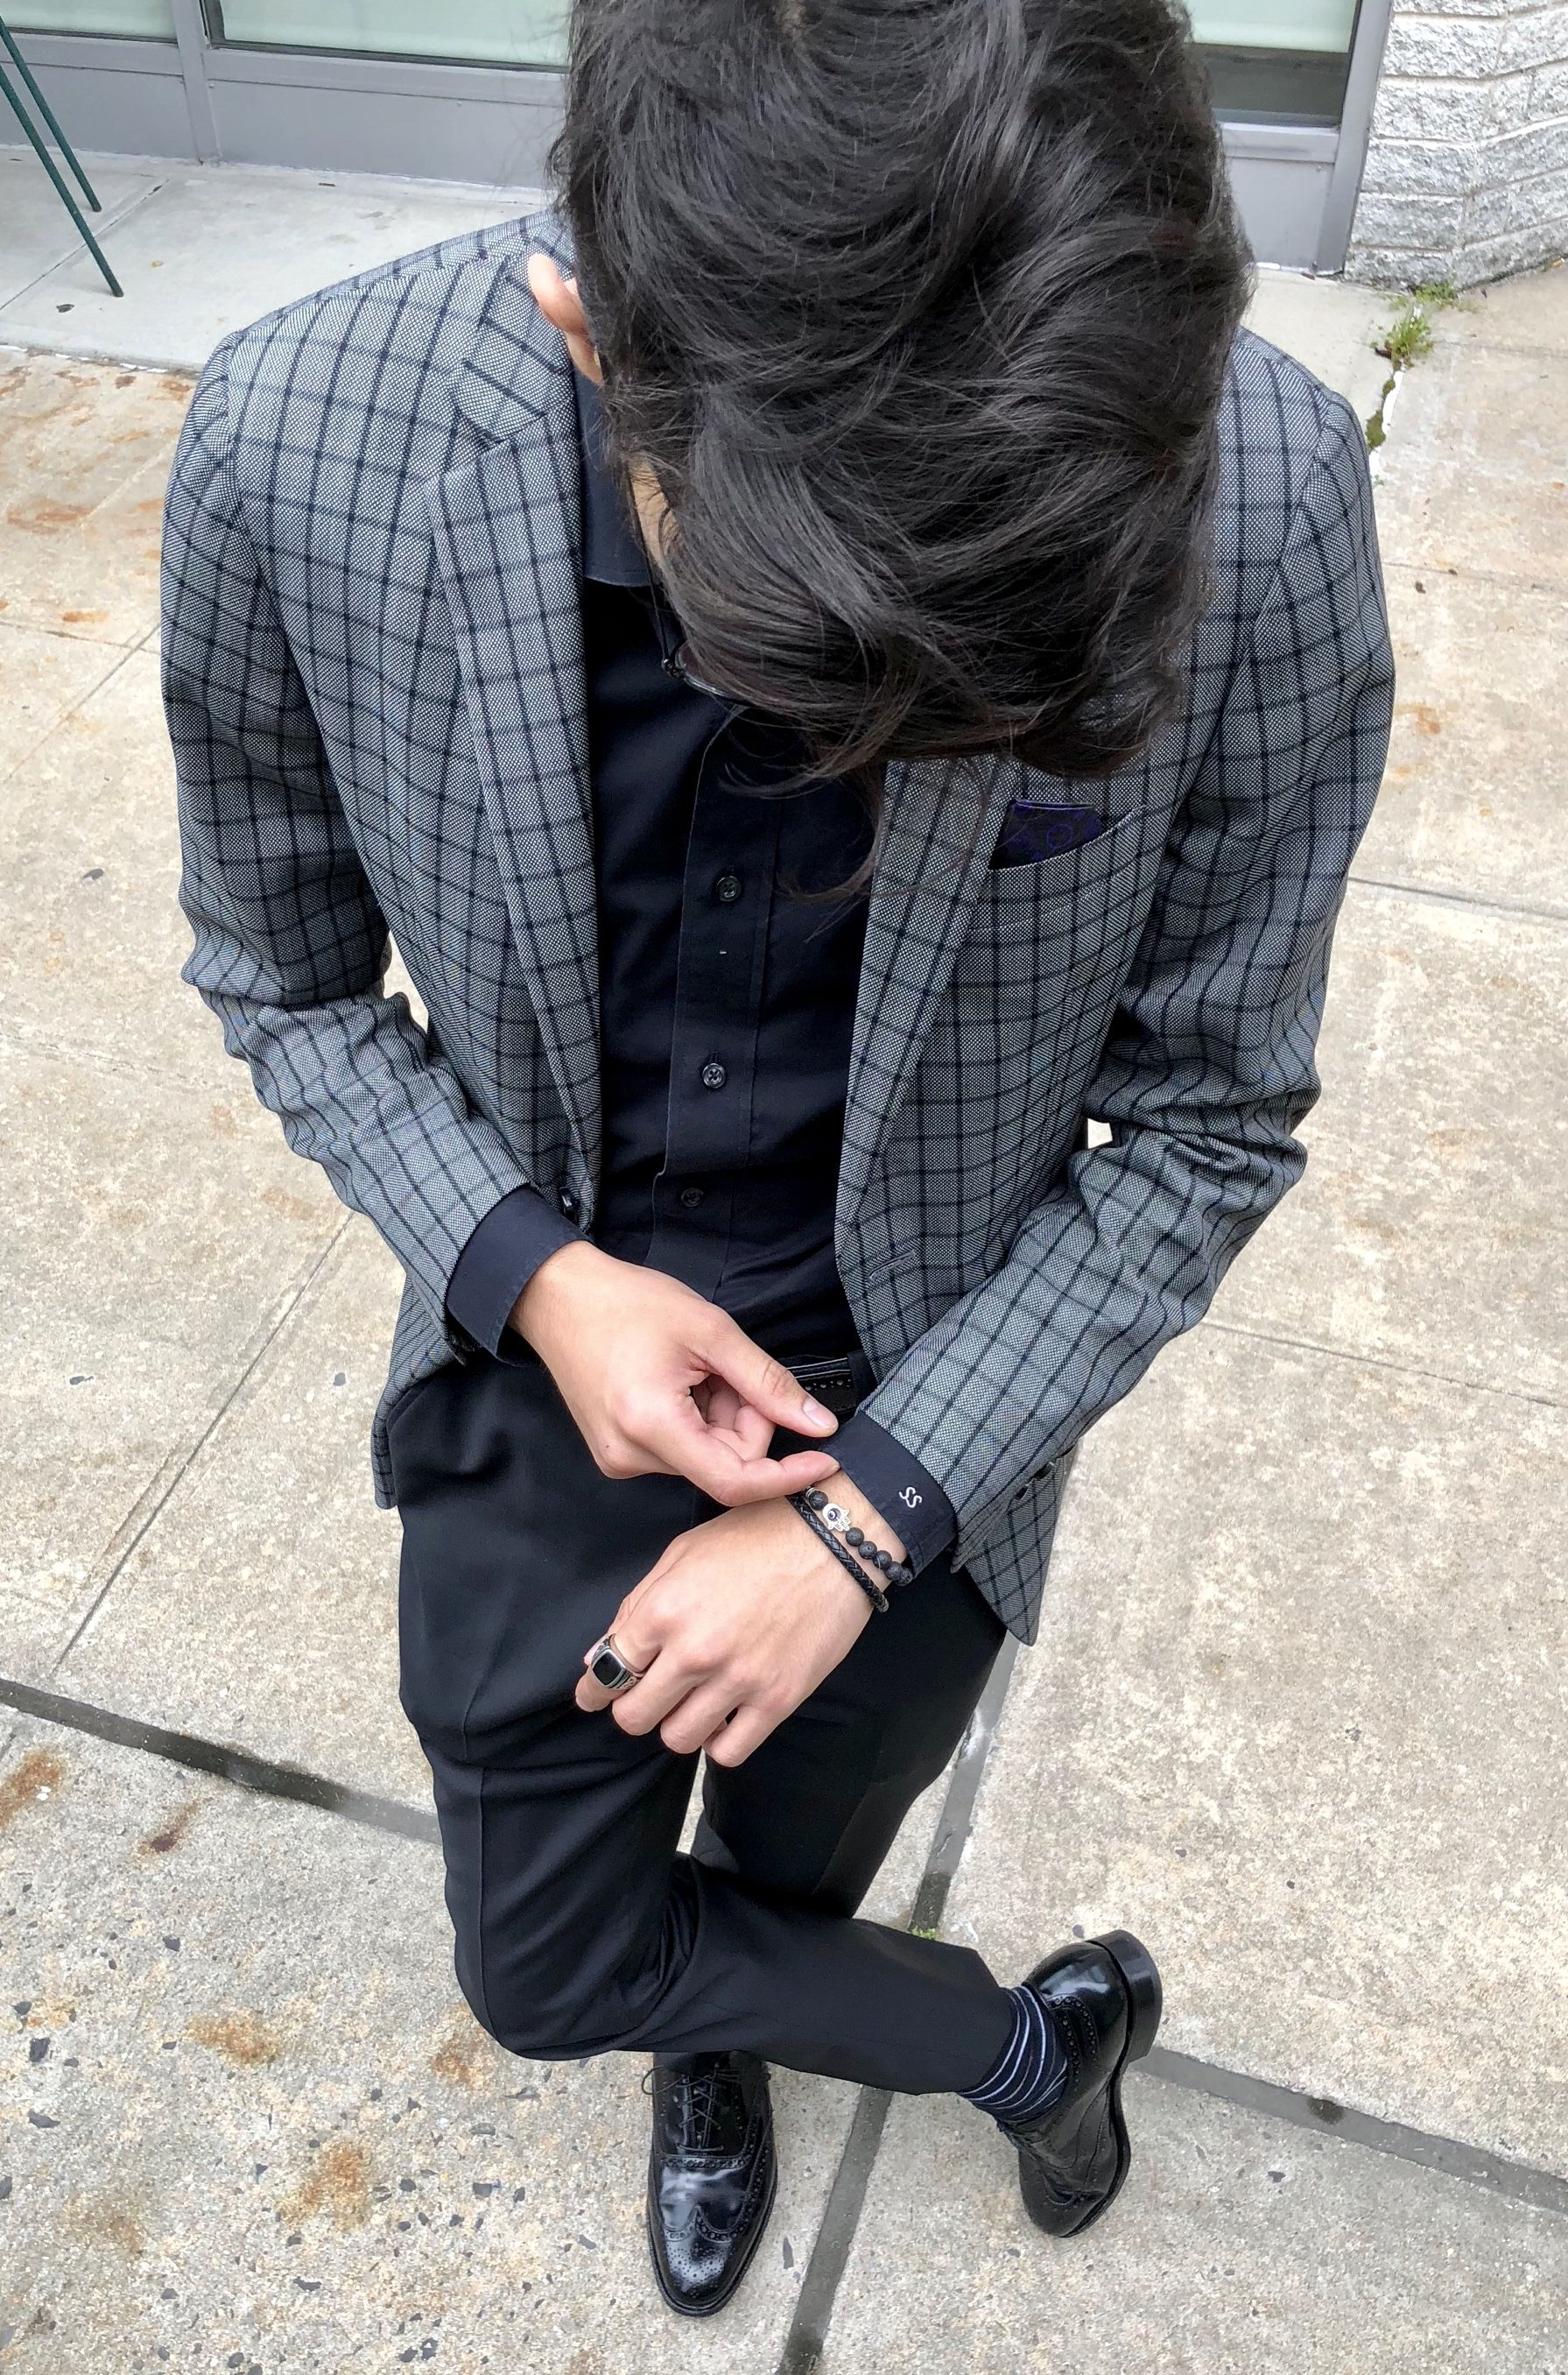 Men S Grey And Black Check Sport Coat With Black Shirt And Black Pants And Shoes Thecl Mens Fashion Business Casual Fashion Business Casual Edgy Fashion Chic [ 2712 x 1791 Pixel ]